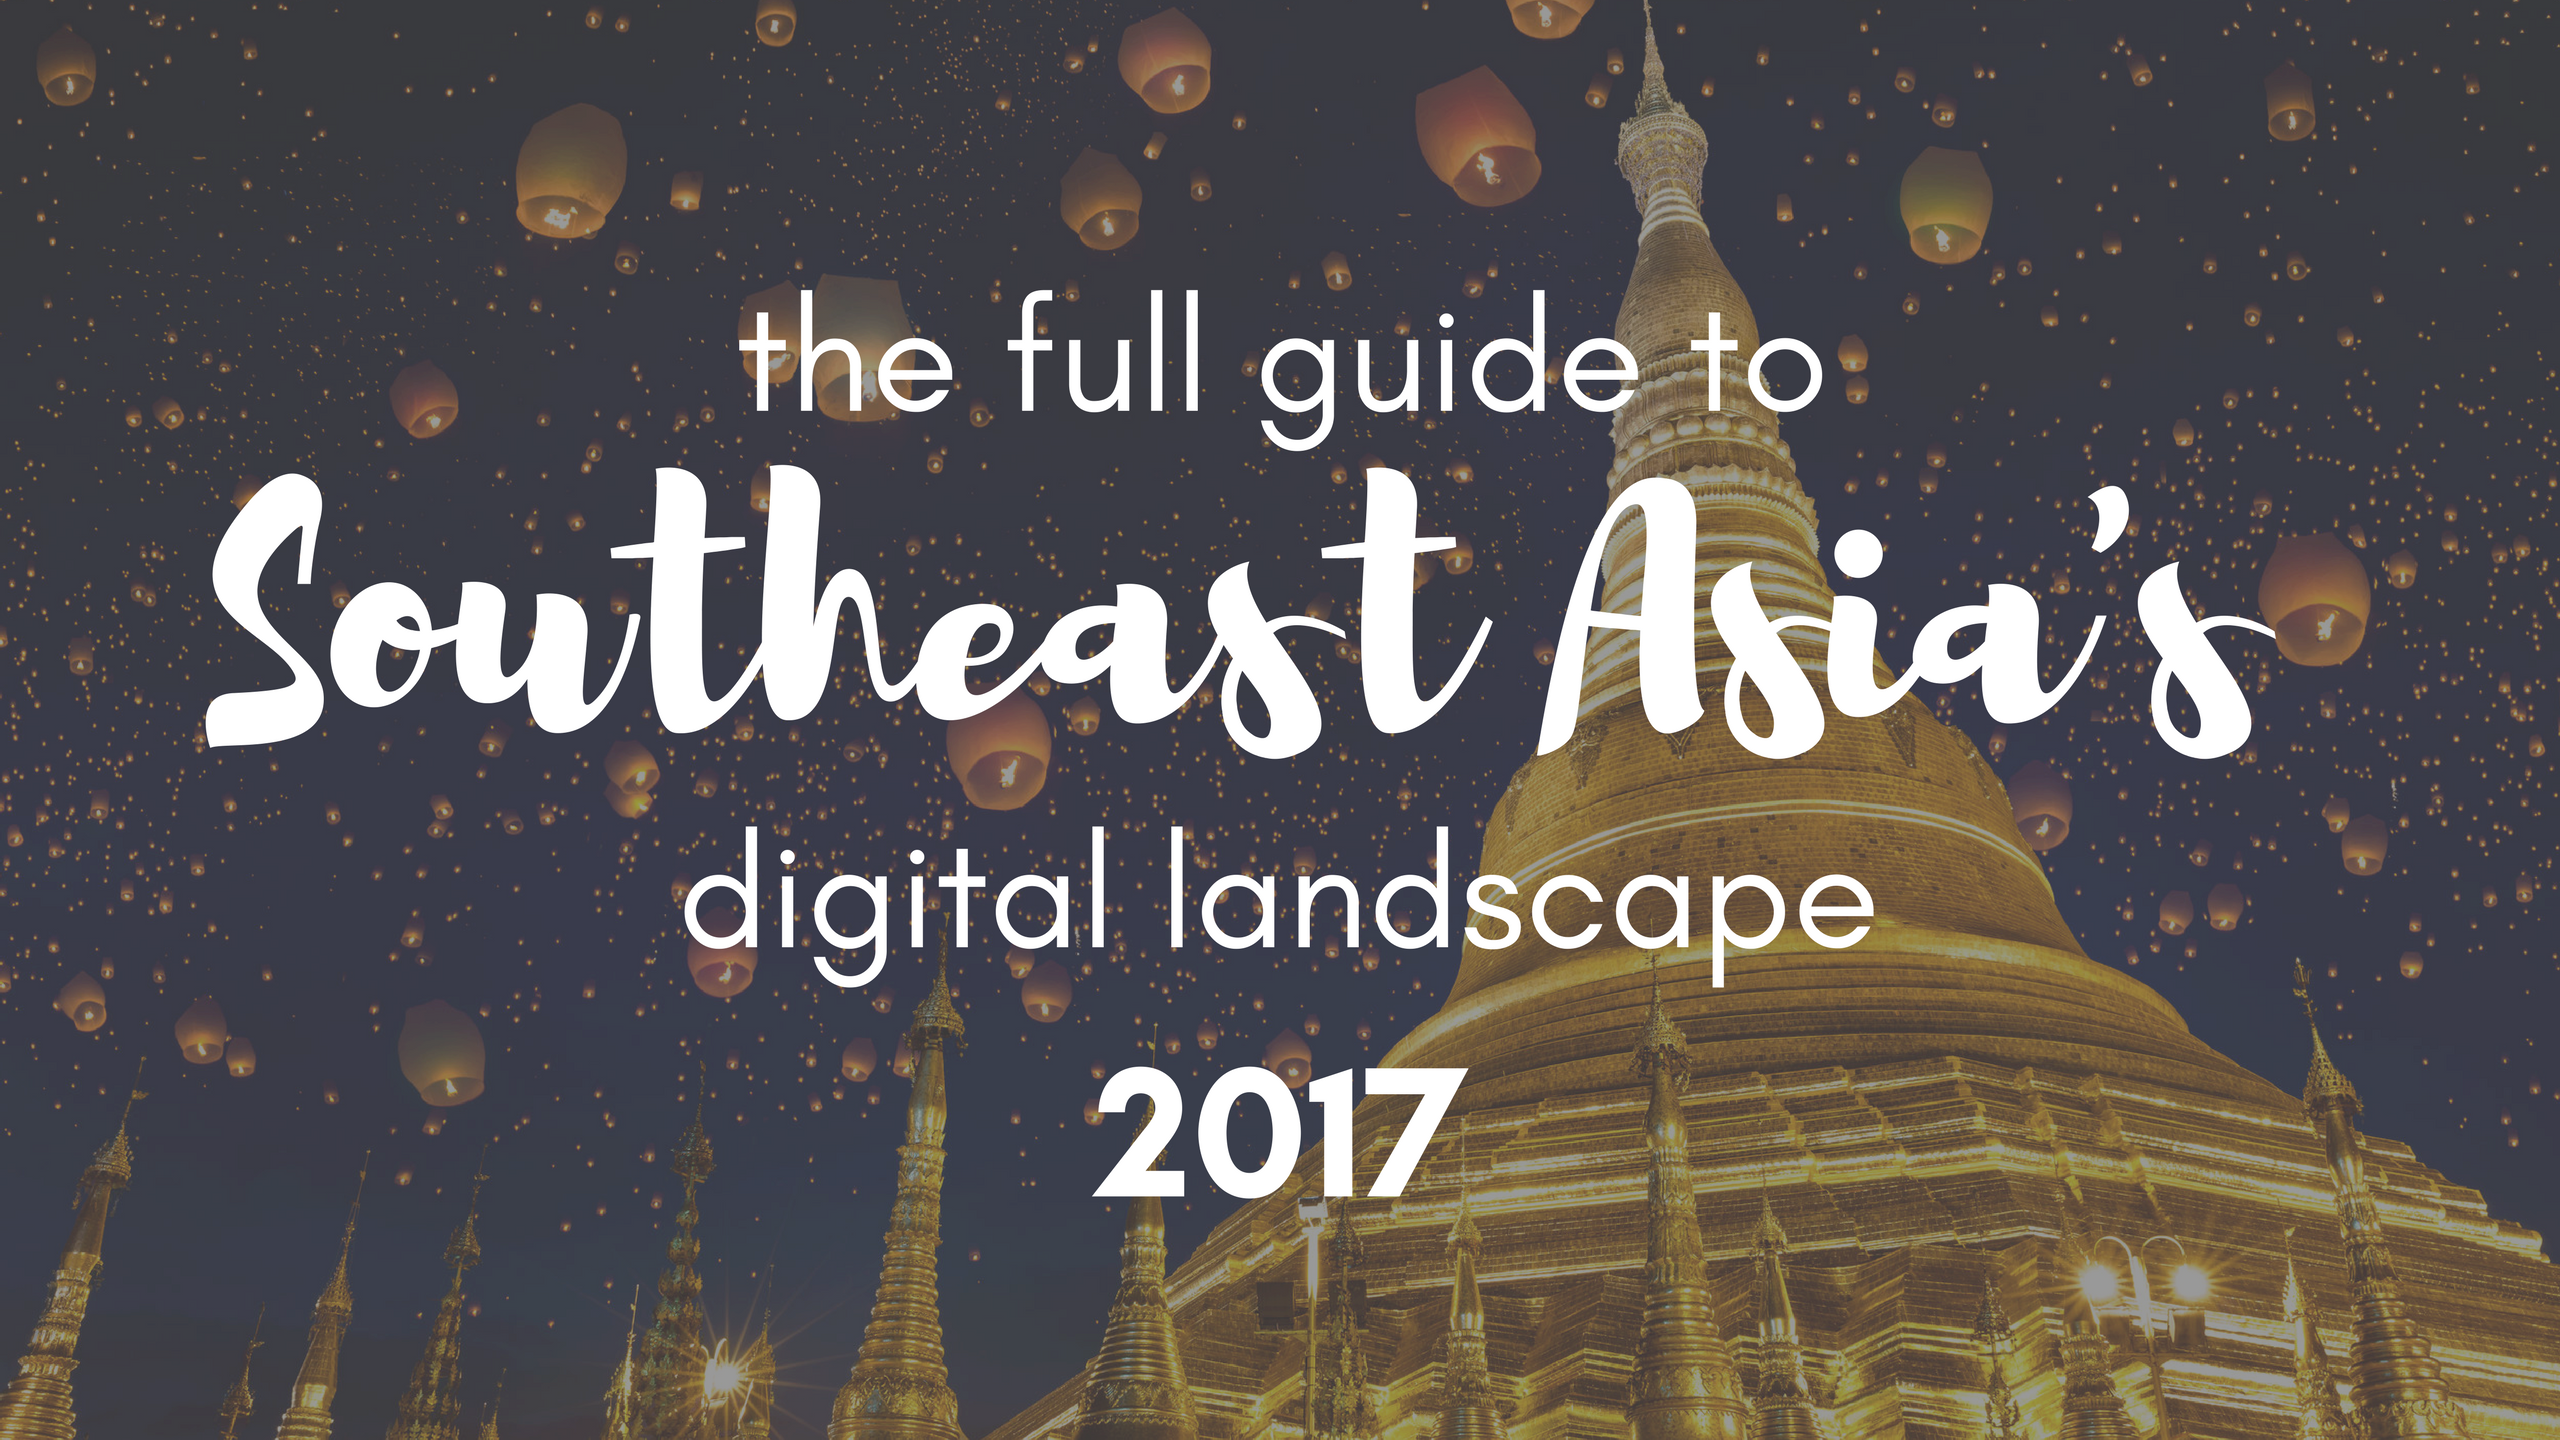 Complete guide to Southeast Asia's digital landscape in 2017